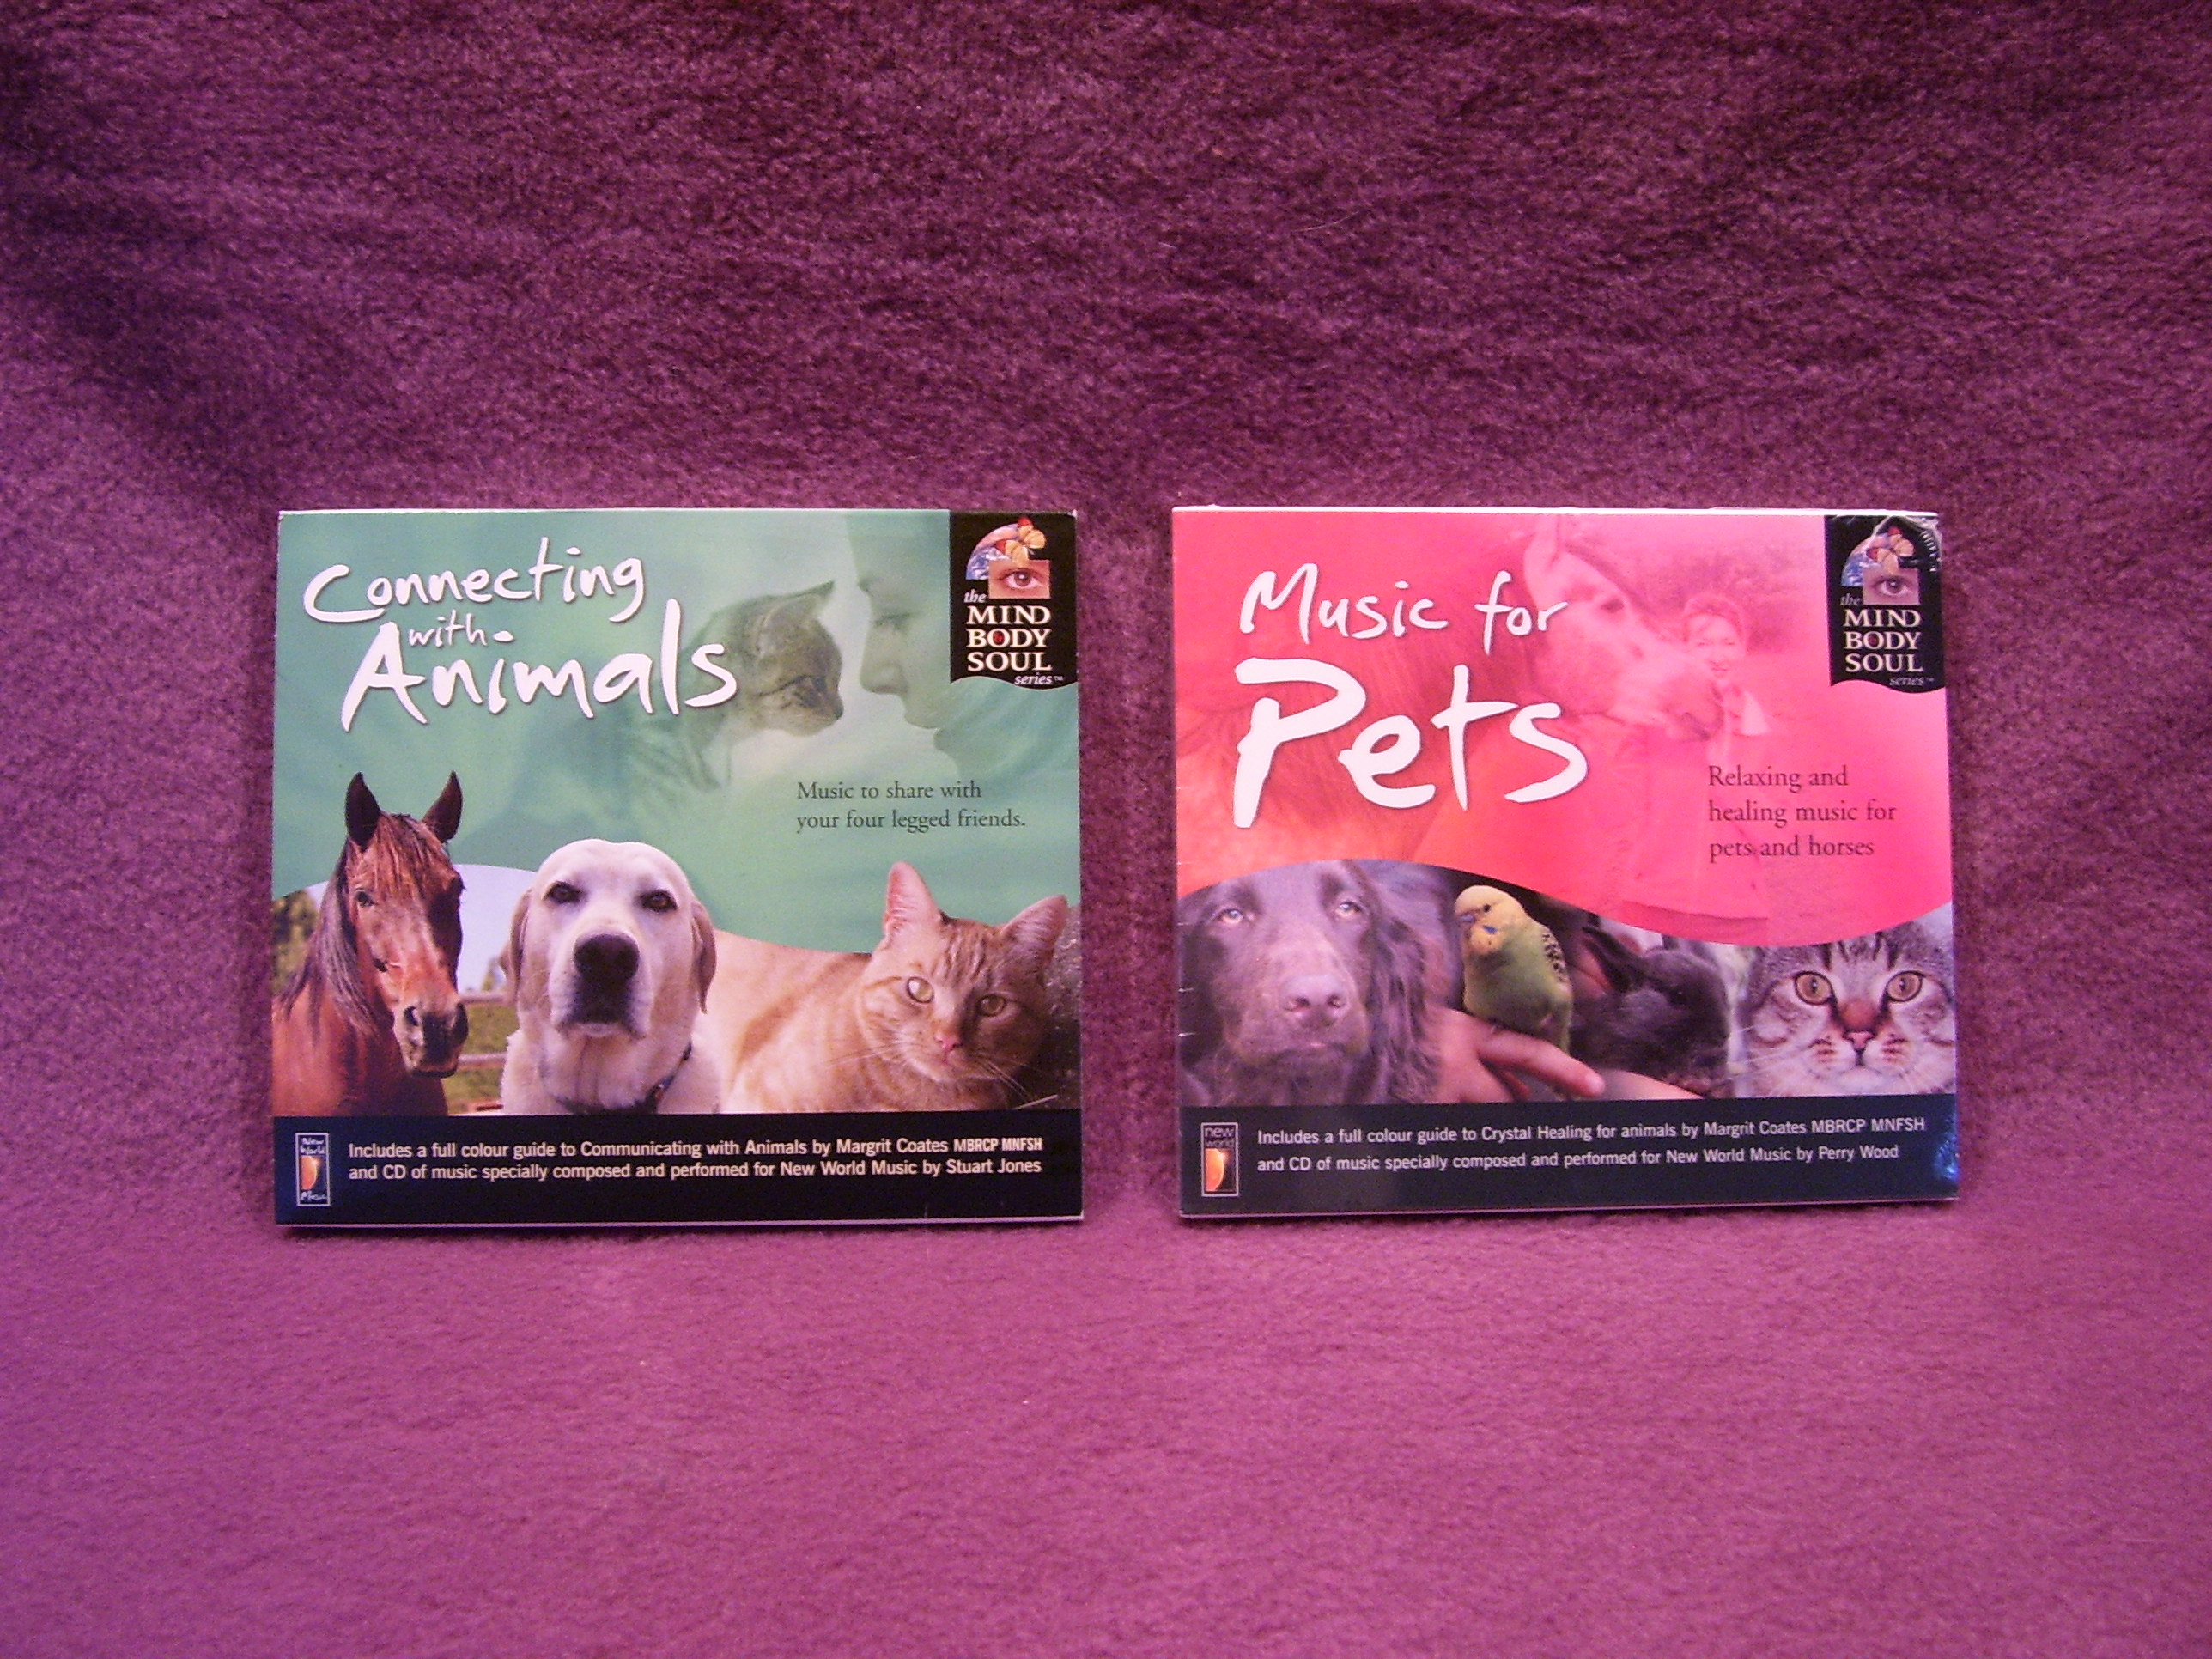 Connecting with the Animals and Music for Pets CDs